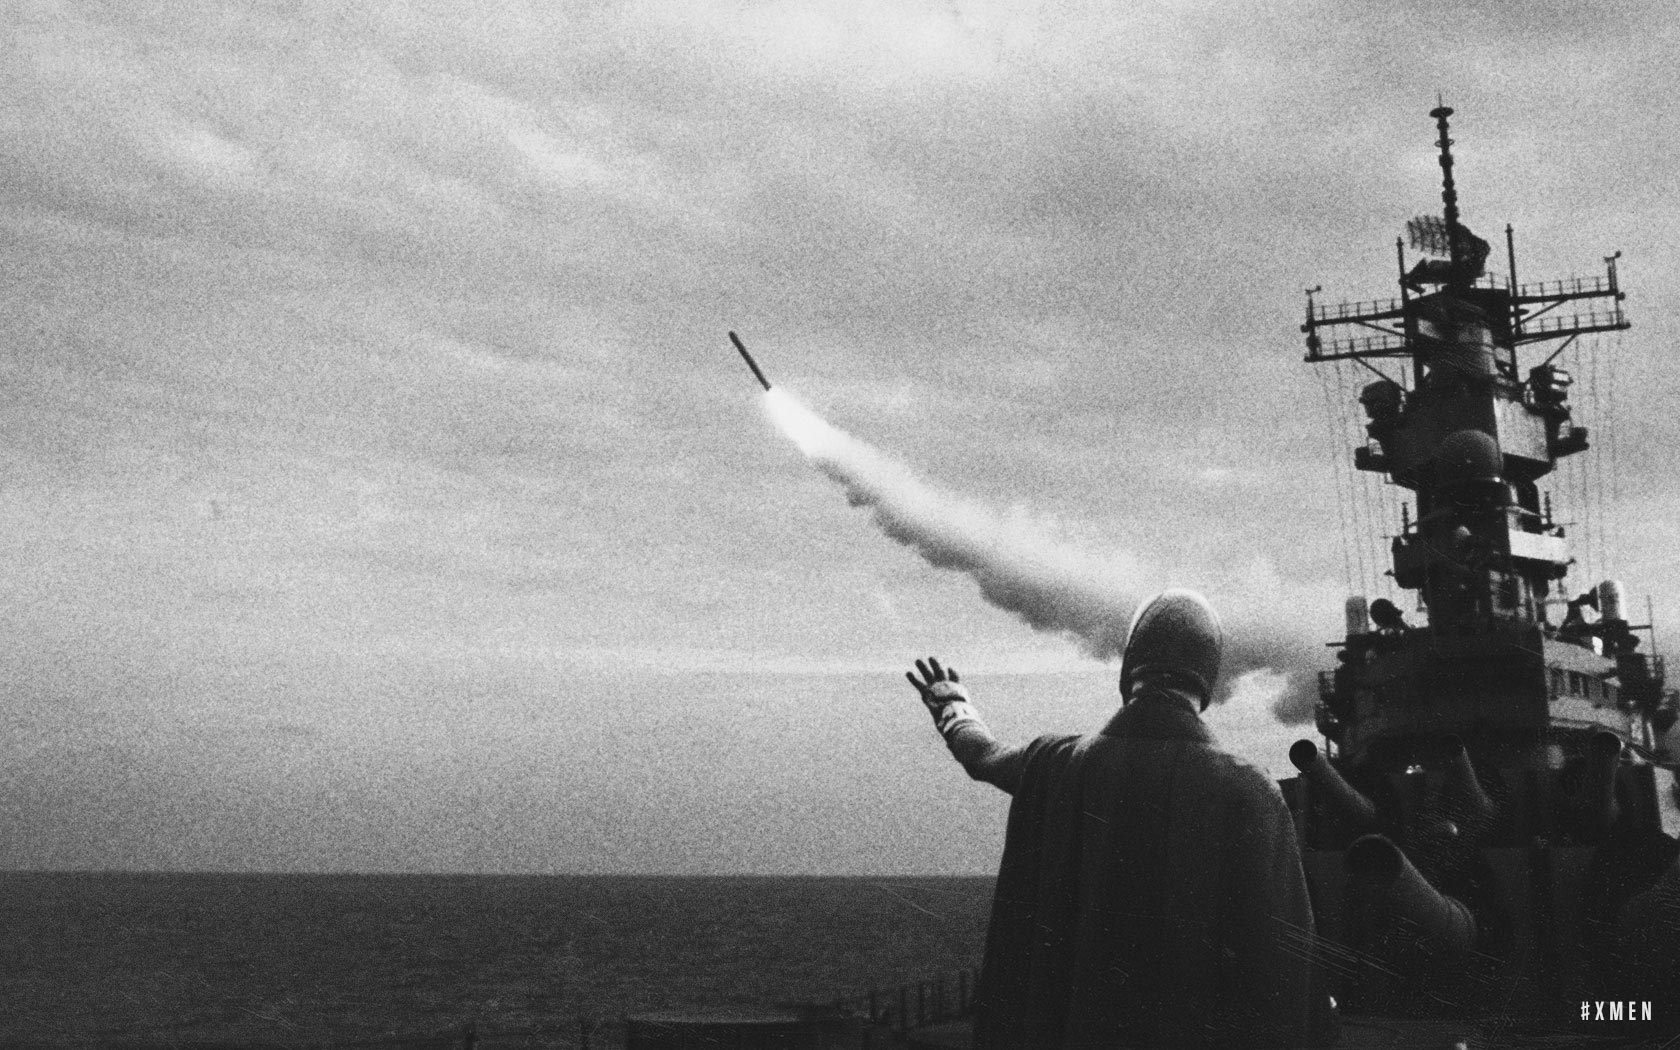 During a pivotal moment in the Cold War, missiles launched near Cuba allegedly malfunction due to an unidentified group with unexplained powers.